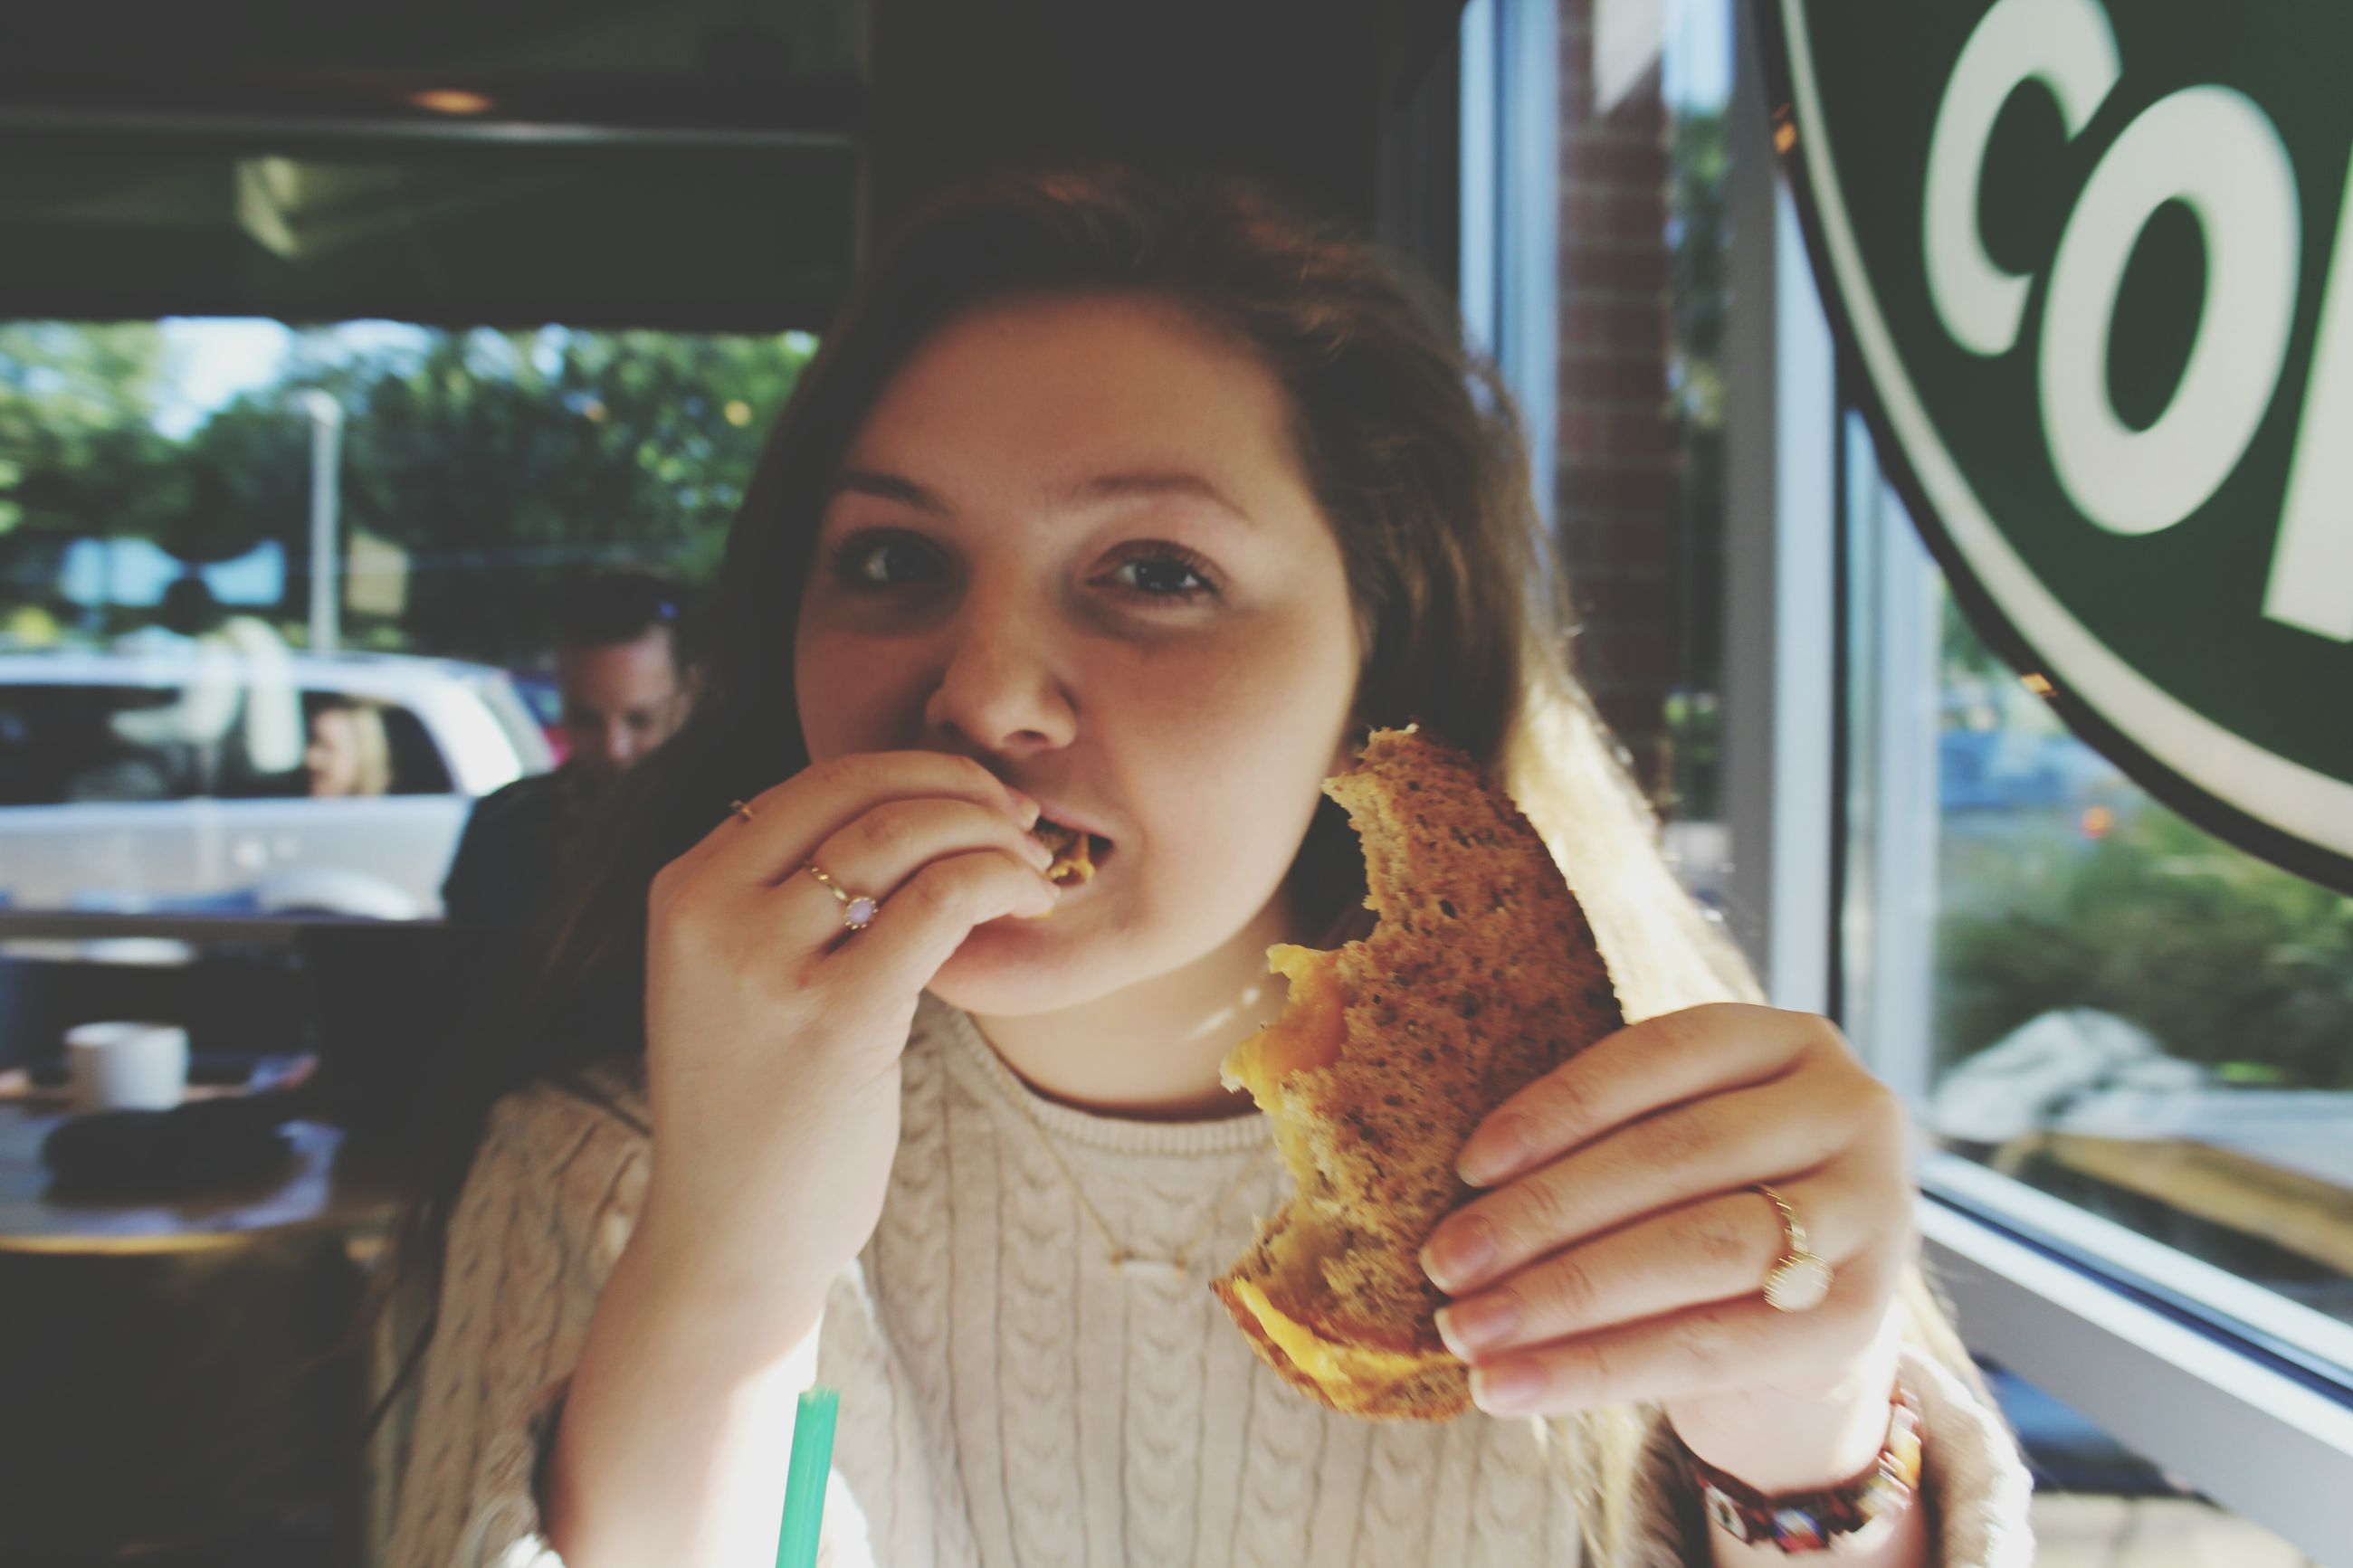 person, lifestyles, focus on foreground, food and drink, indoors, holding, leisure activity, headshot, looking at camera, portrait, smiling, food, childhood, waist up, close-up, front view, casual clothing, head and shoulders